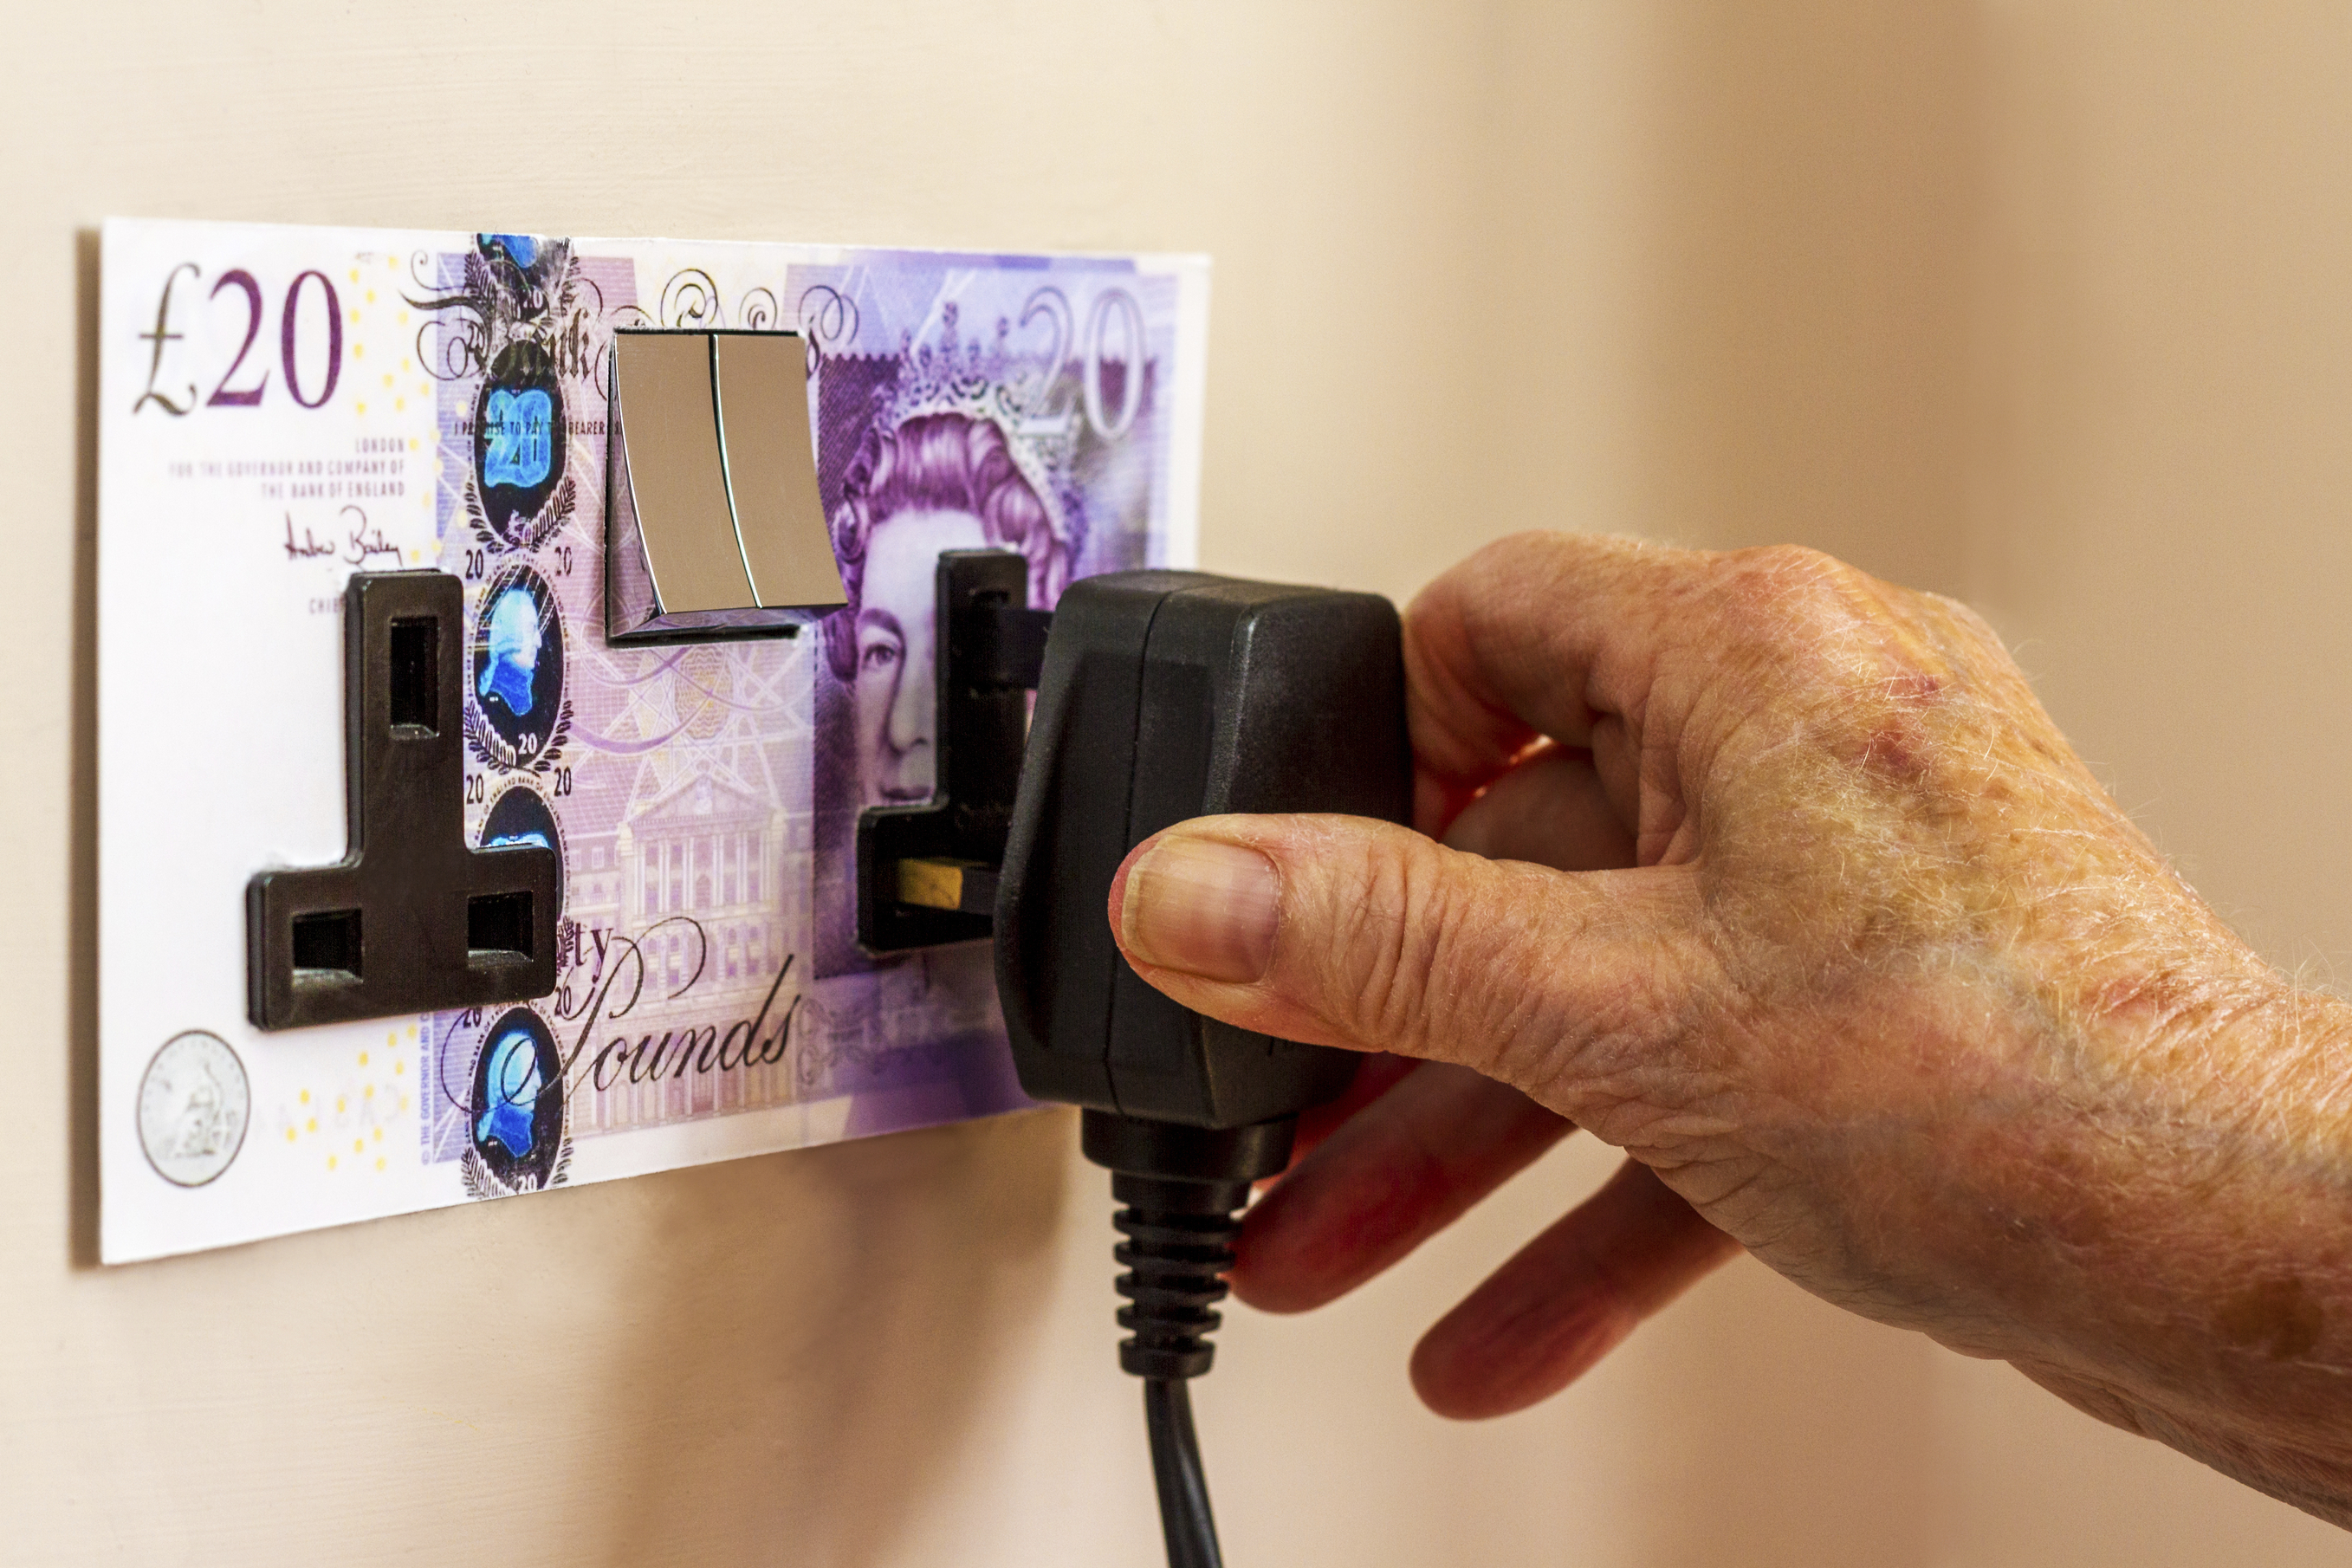 Plug socket with £20 notes on it- hand plugging in plug